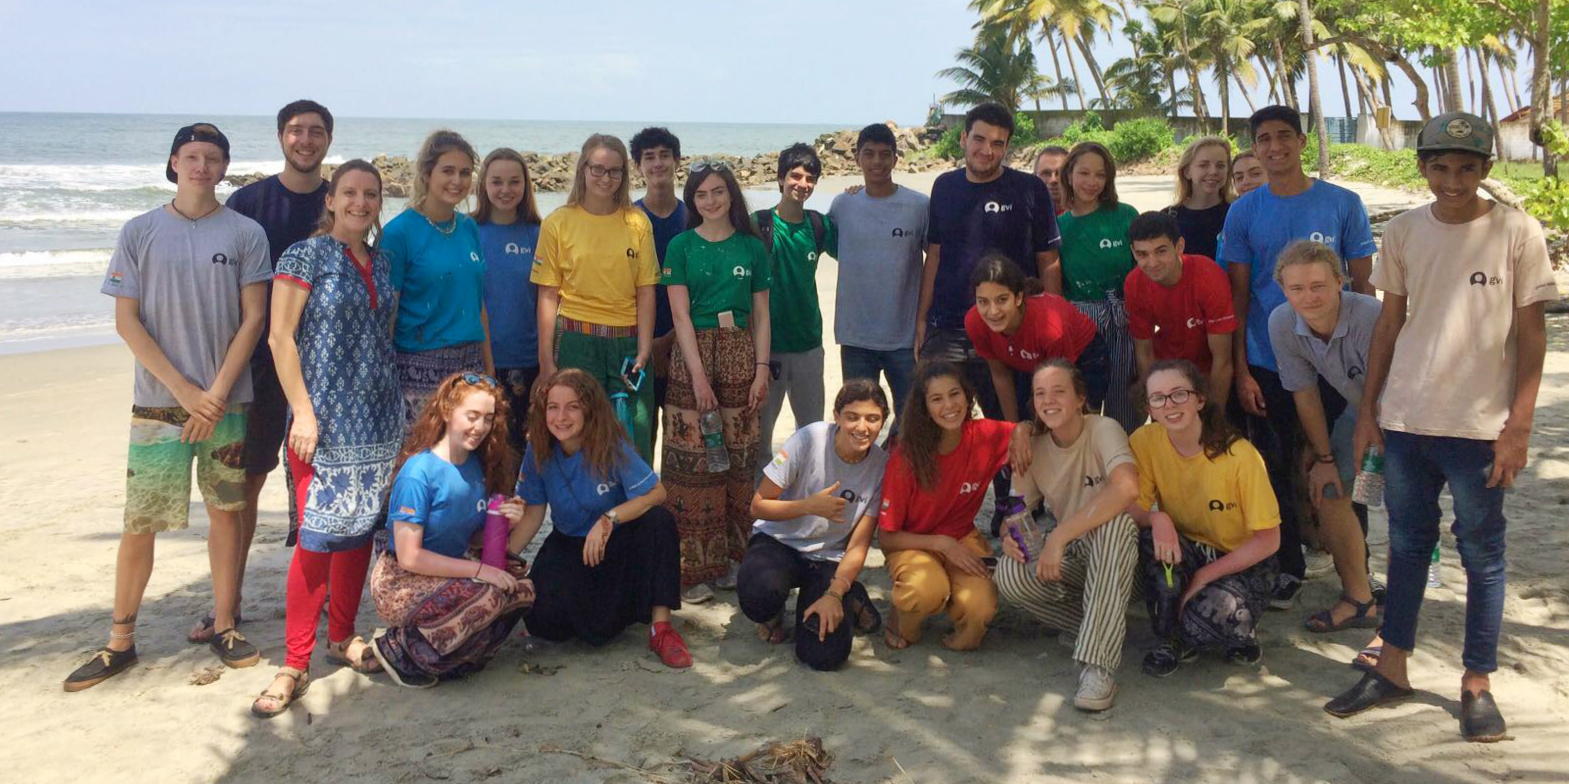 These GVI participants enjoy one of GVI's volunteer trips for teens.